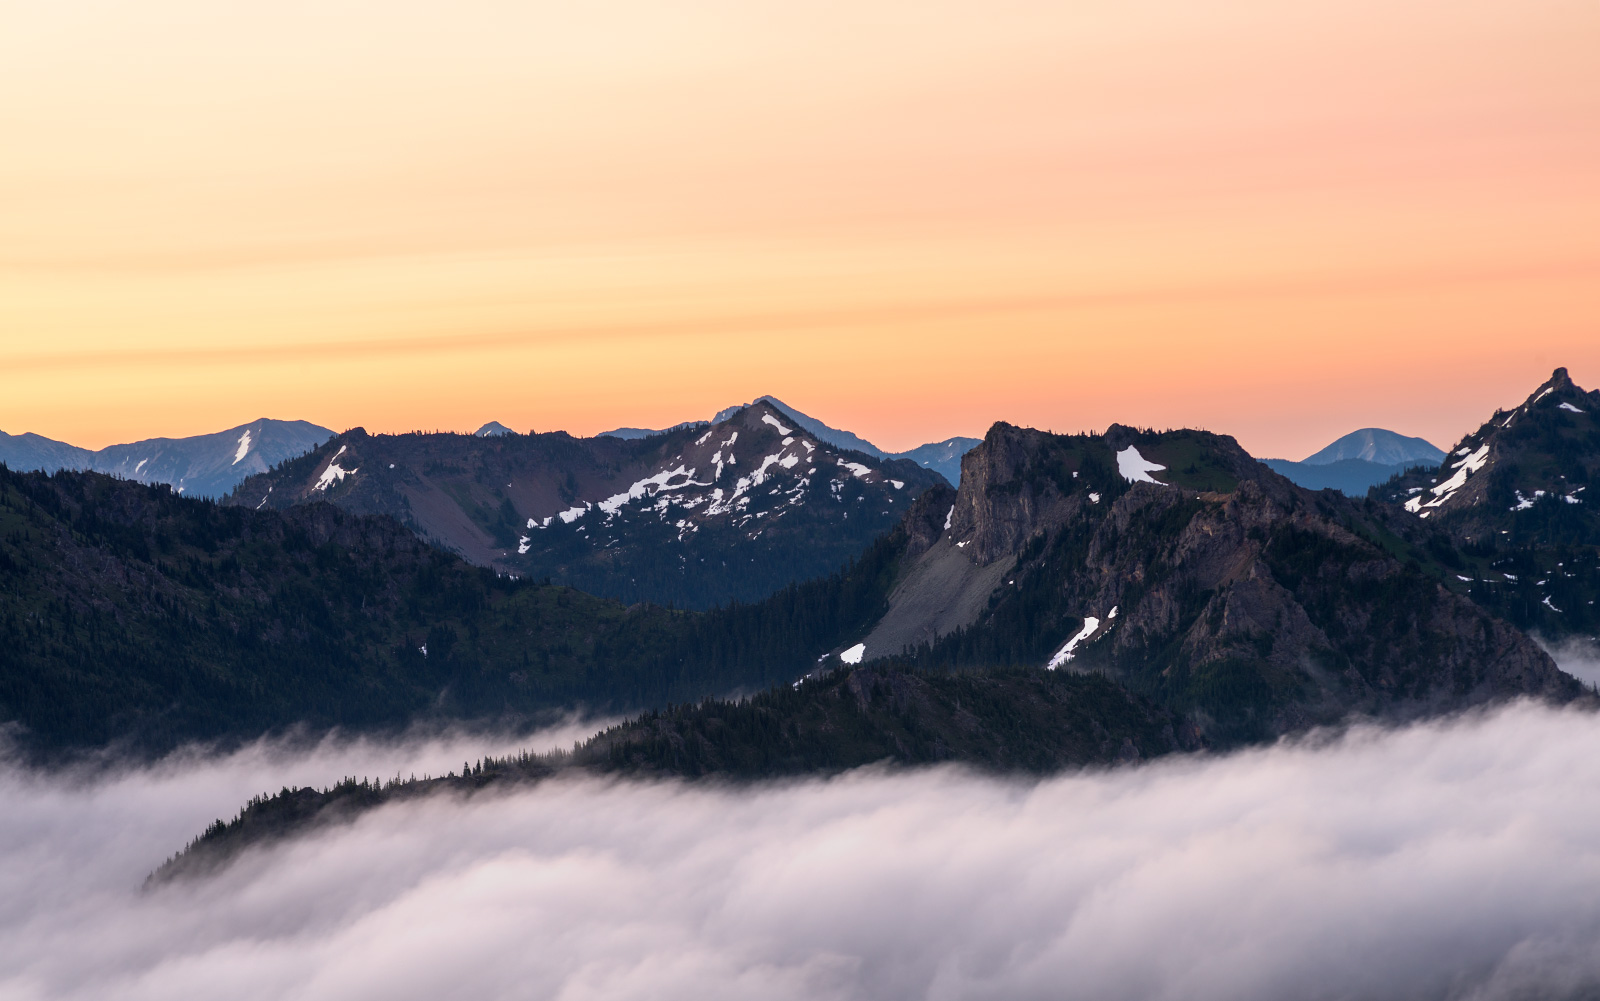 Sunrise at Mount Rainier, looking south-east. Got what was left of the cloud bank during the night, in the frame.